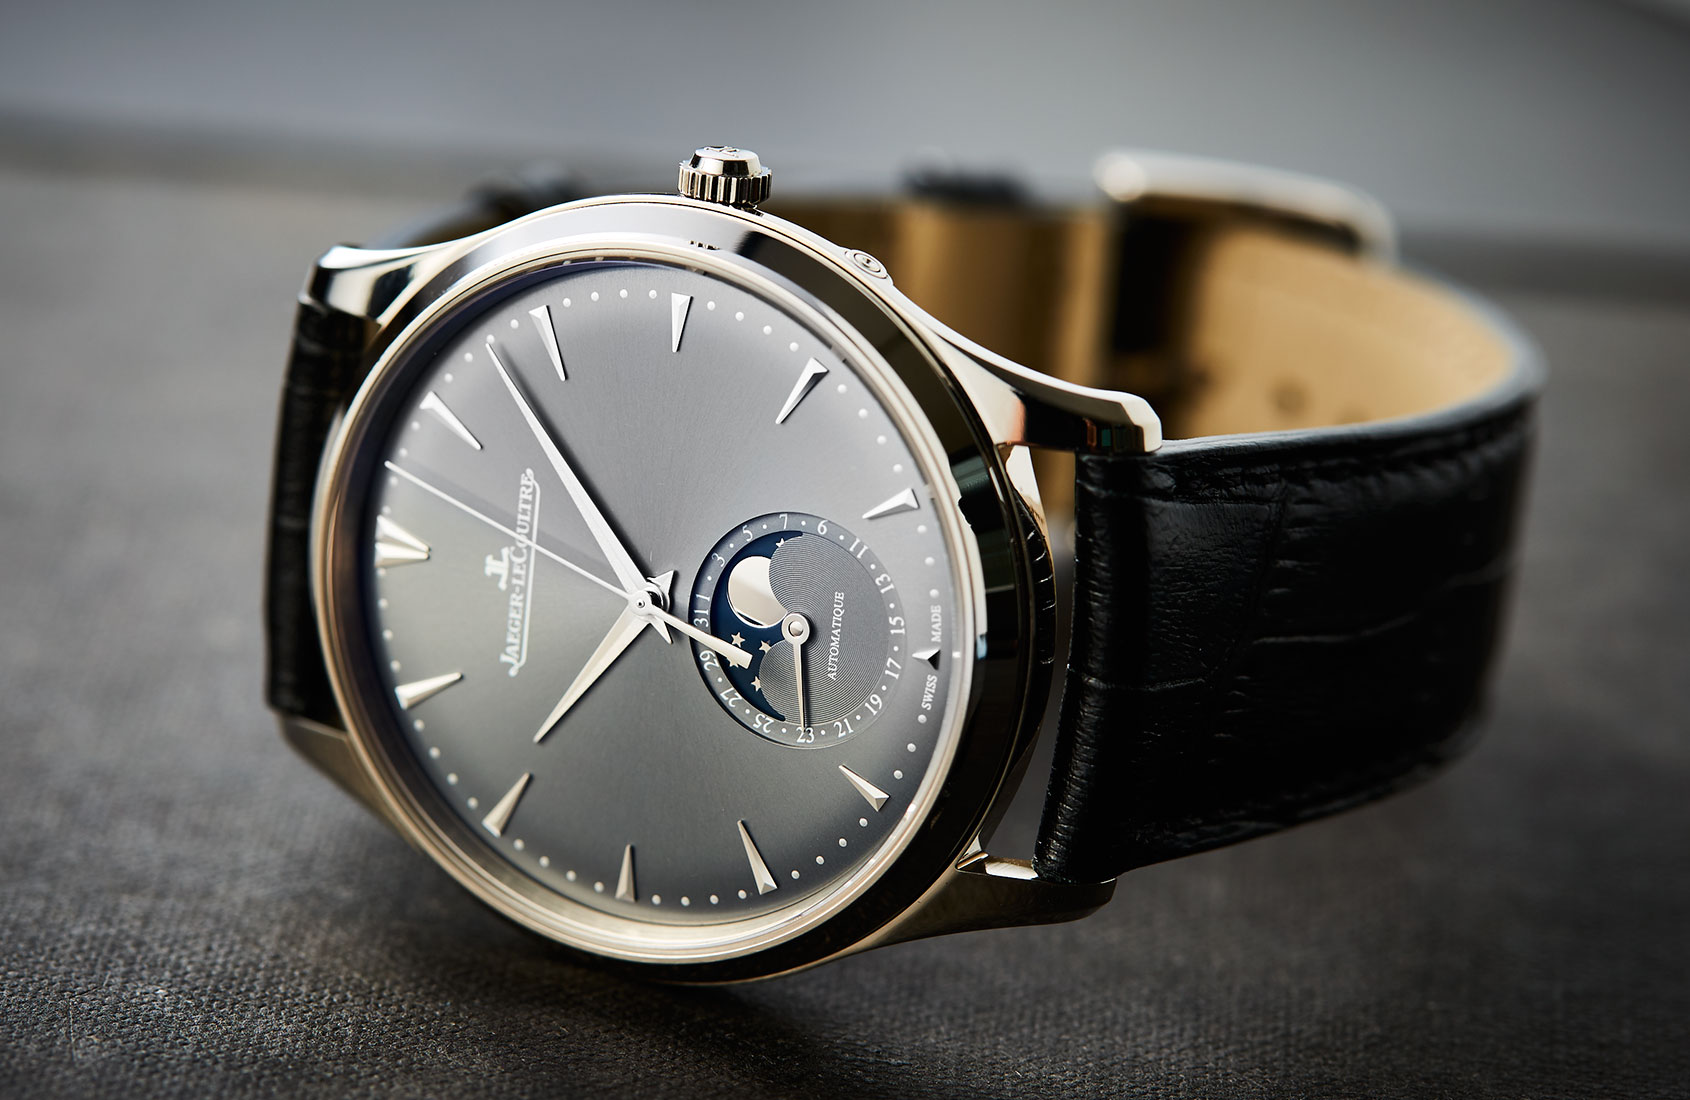 e1b2c764ec6d6 EDITOR S PICK  An exercise in subtlety – the Jaeger-LeCoultre Master ...